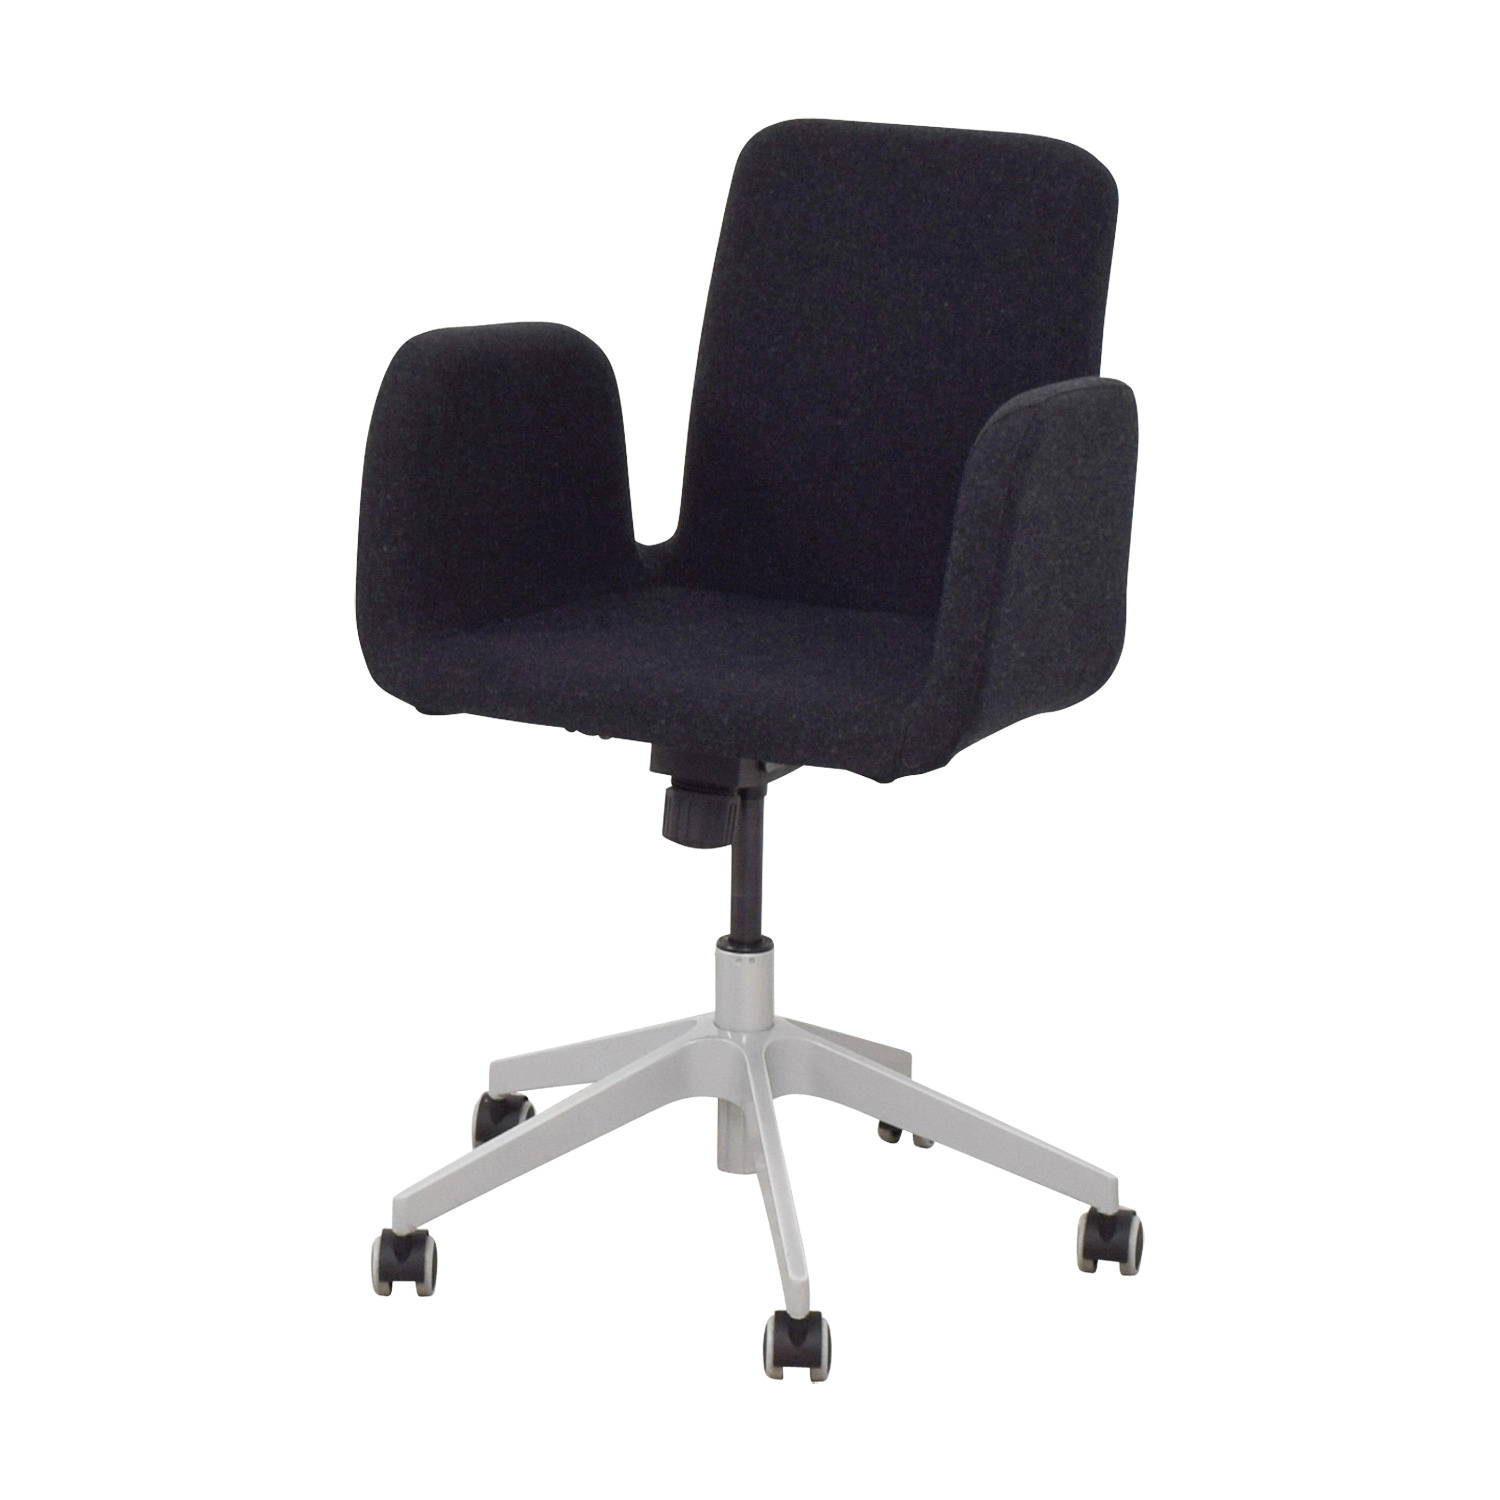 Black Desk Chair 61 Off Ikea Ikea Black Desk Chair Chairs